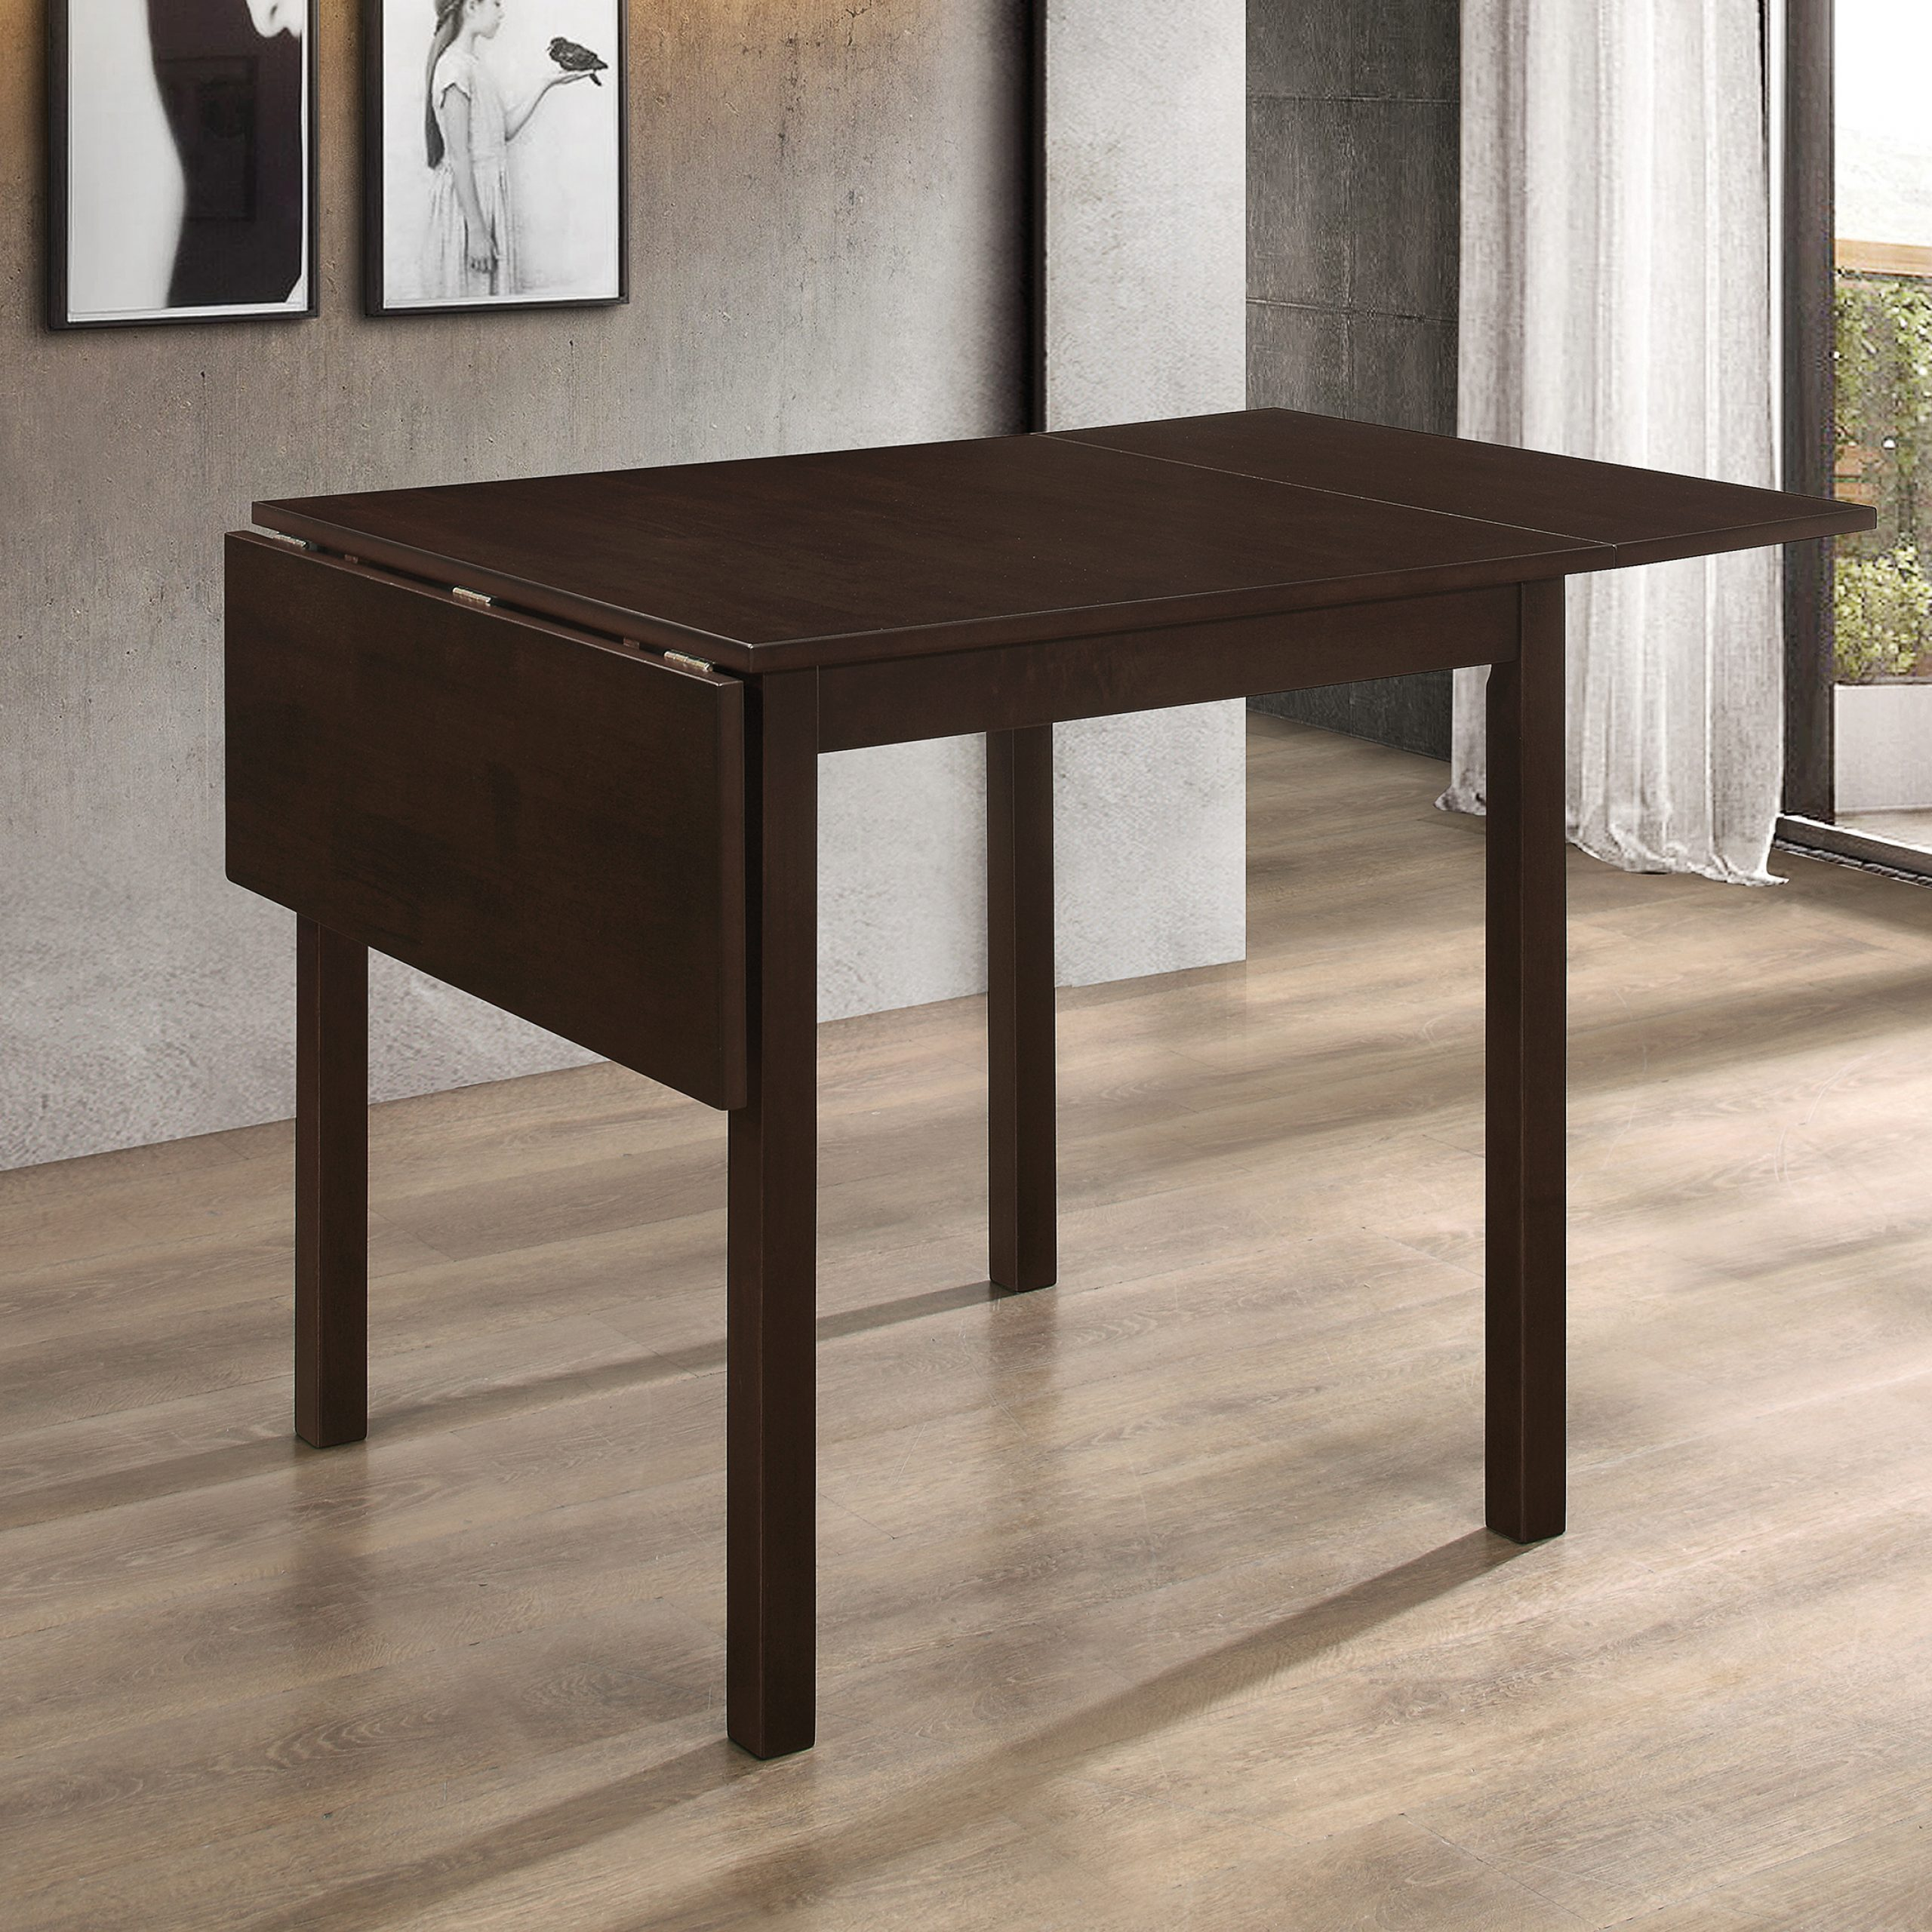 Kelso Rectangular Dining Table With Drop Leaf Cappuccino For Best And Newest Transitional 3 Piece Drop Leaf Casual Dining Tables Set (View 25 of 25)